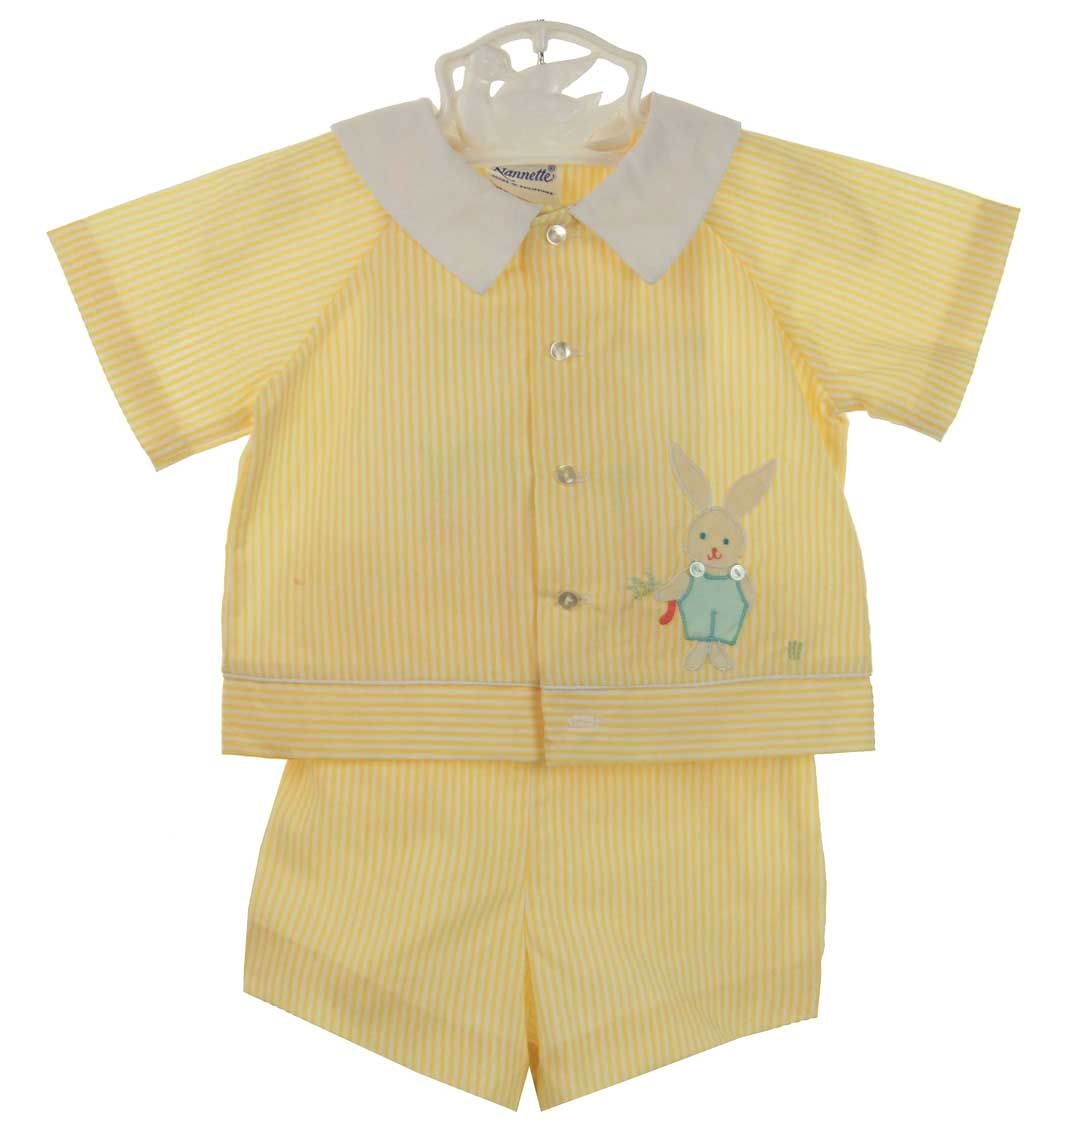 Retro 1960s Unworn Nannette Yellow Striped Sunsuit And